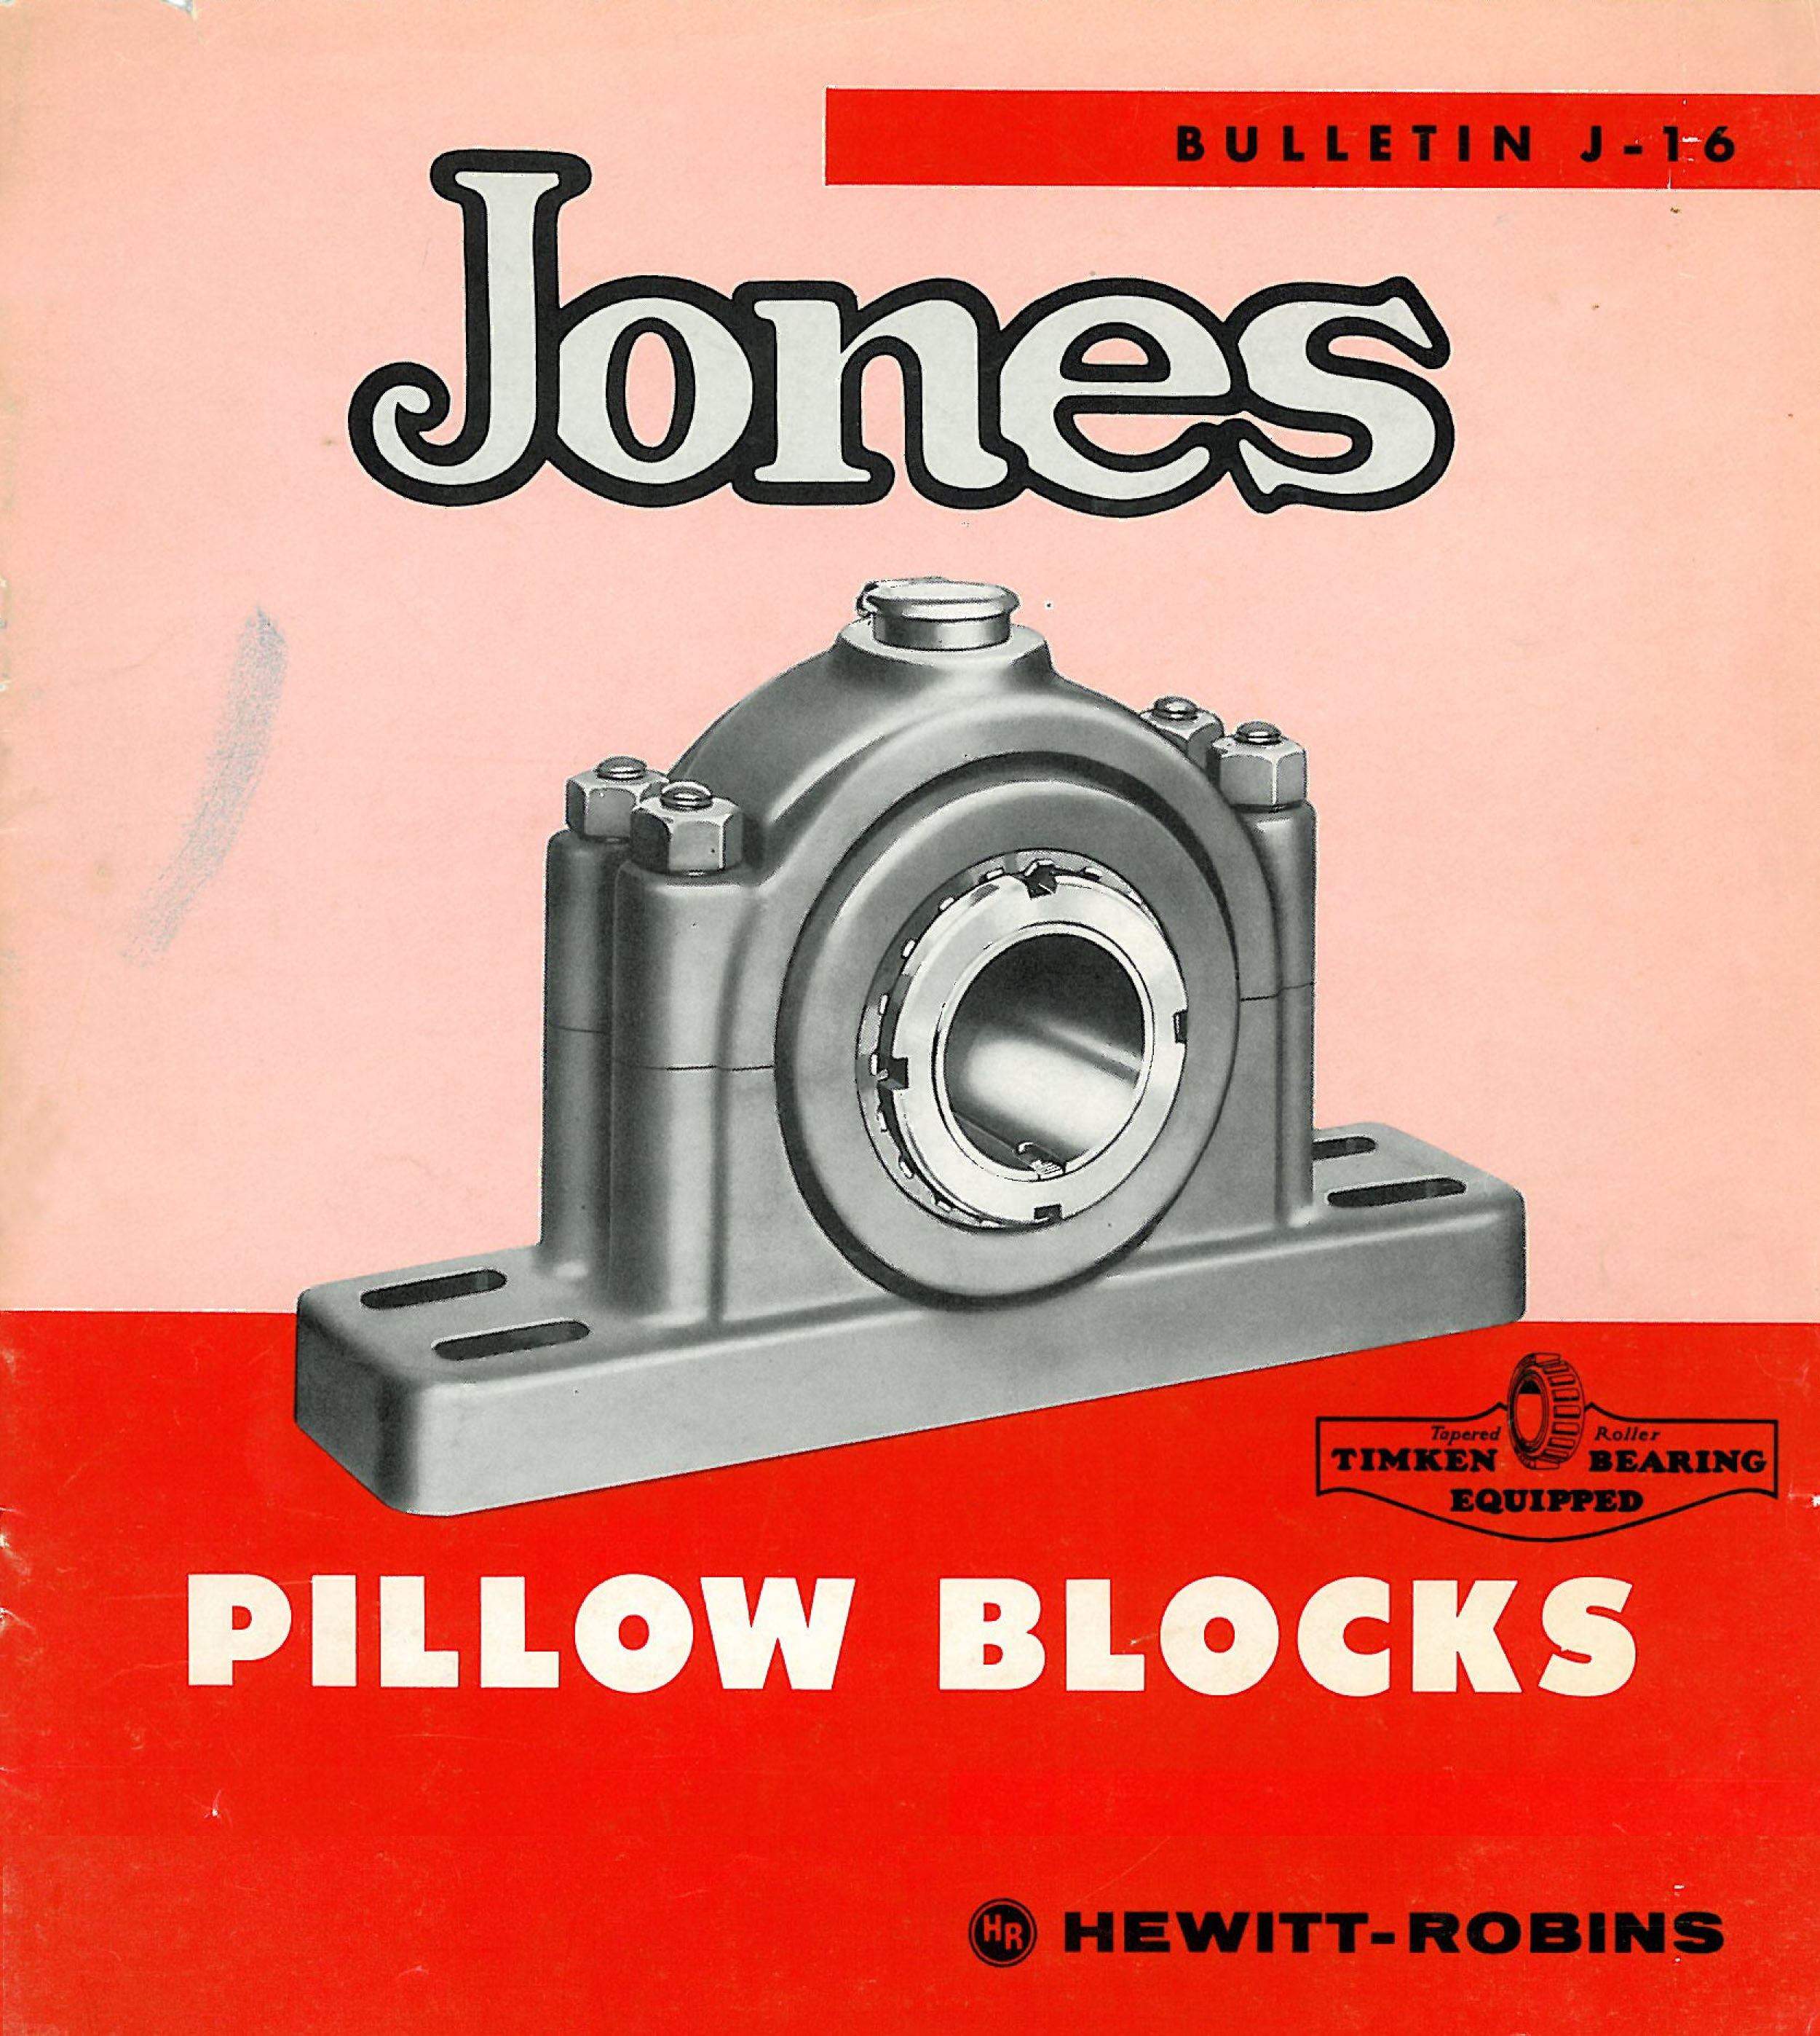 pilllow-block-circa-1933-series